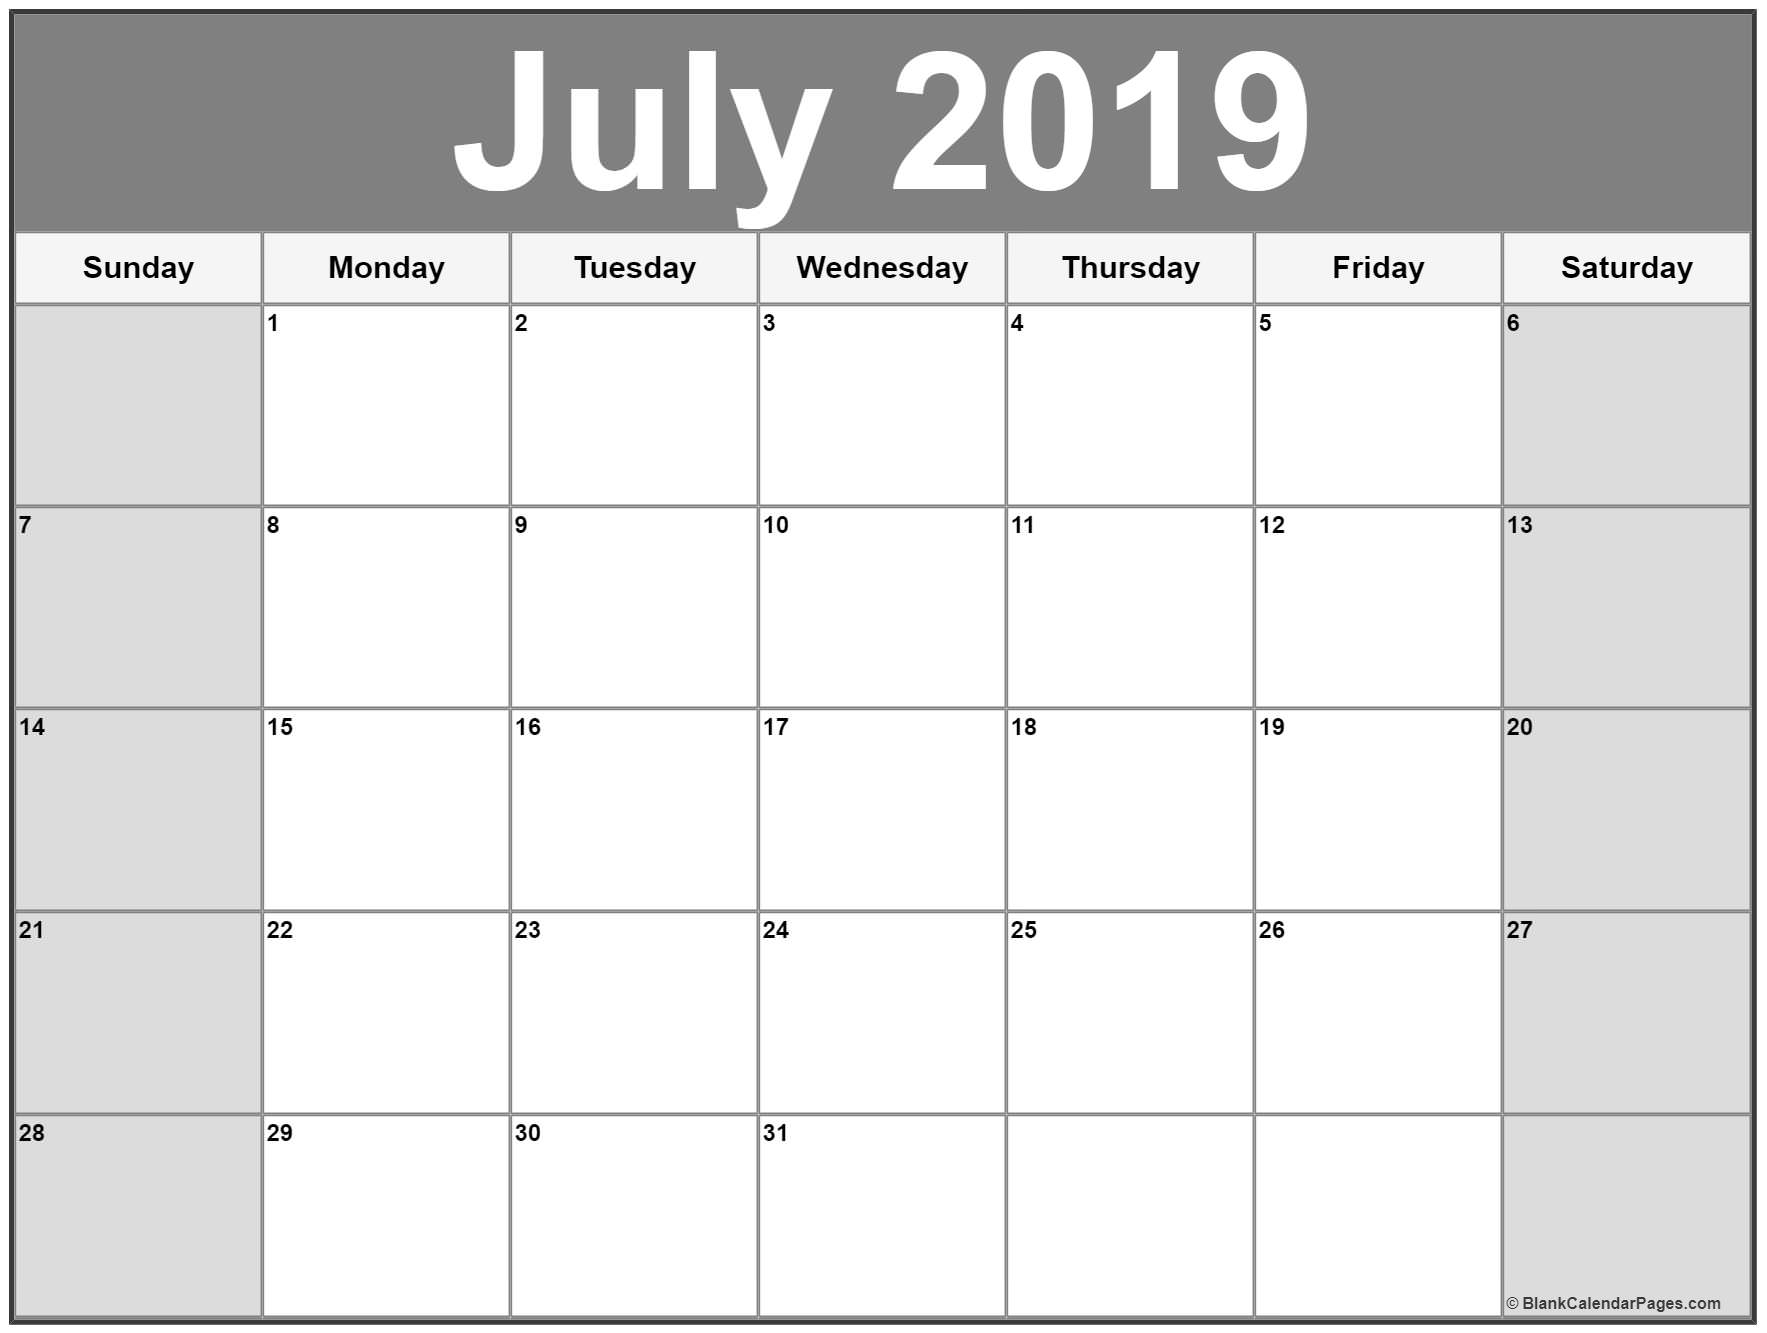 Win Calendar July 2020  Yatay.horizonconsulting.co with Wincalendar July 2020